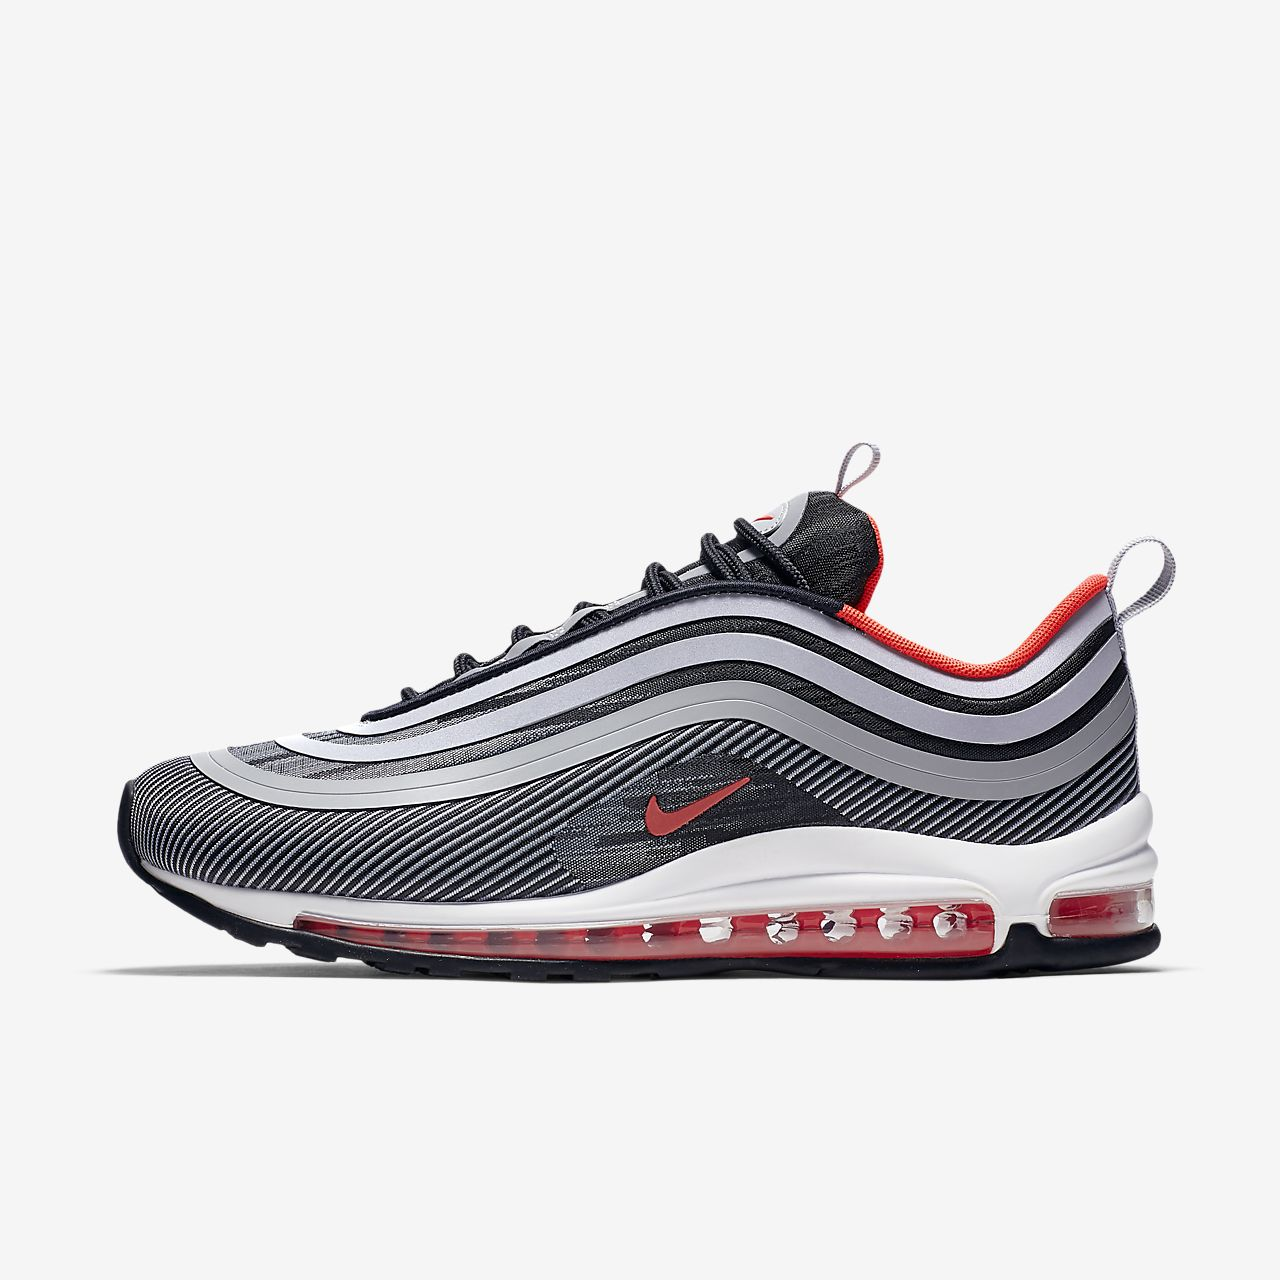 fa7c22b0e9 Nike Air Max 97 Ultra '17 Men's Shoe. Nike.com ID